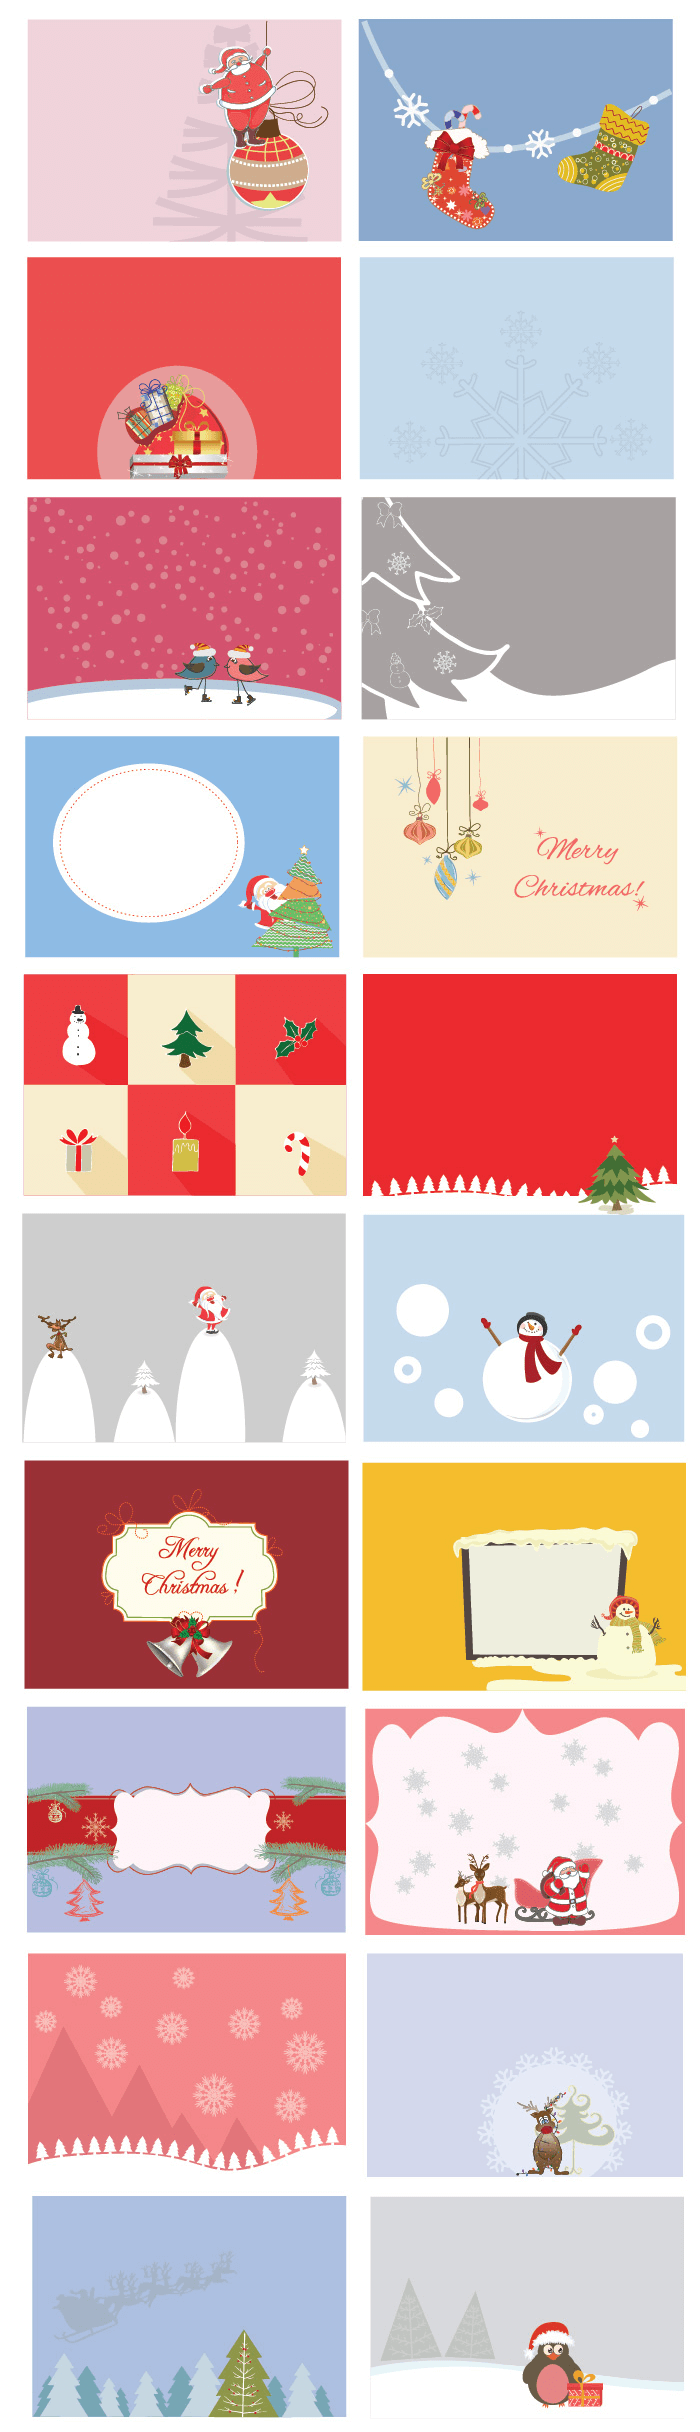 700px_winter-illustrations-set-3-01